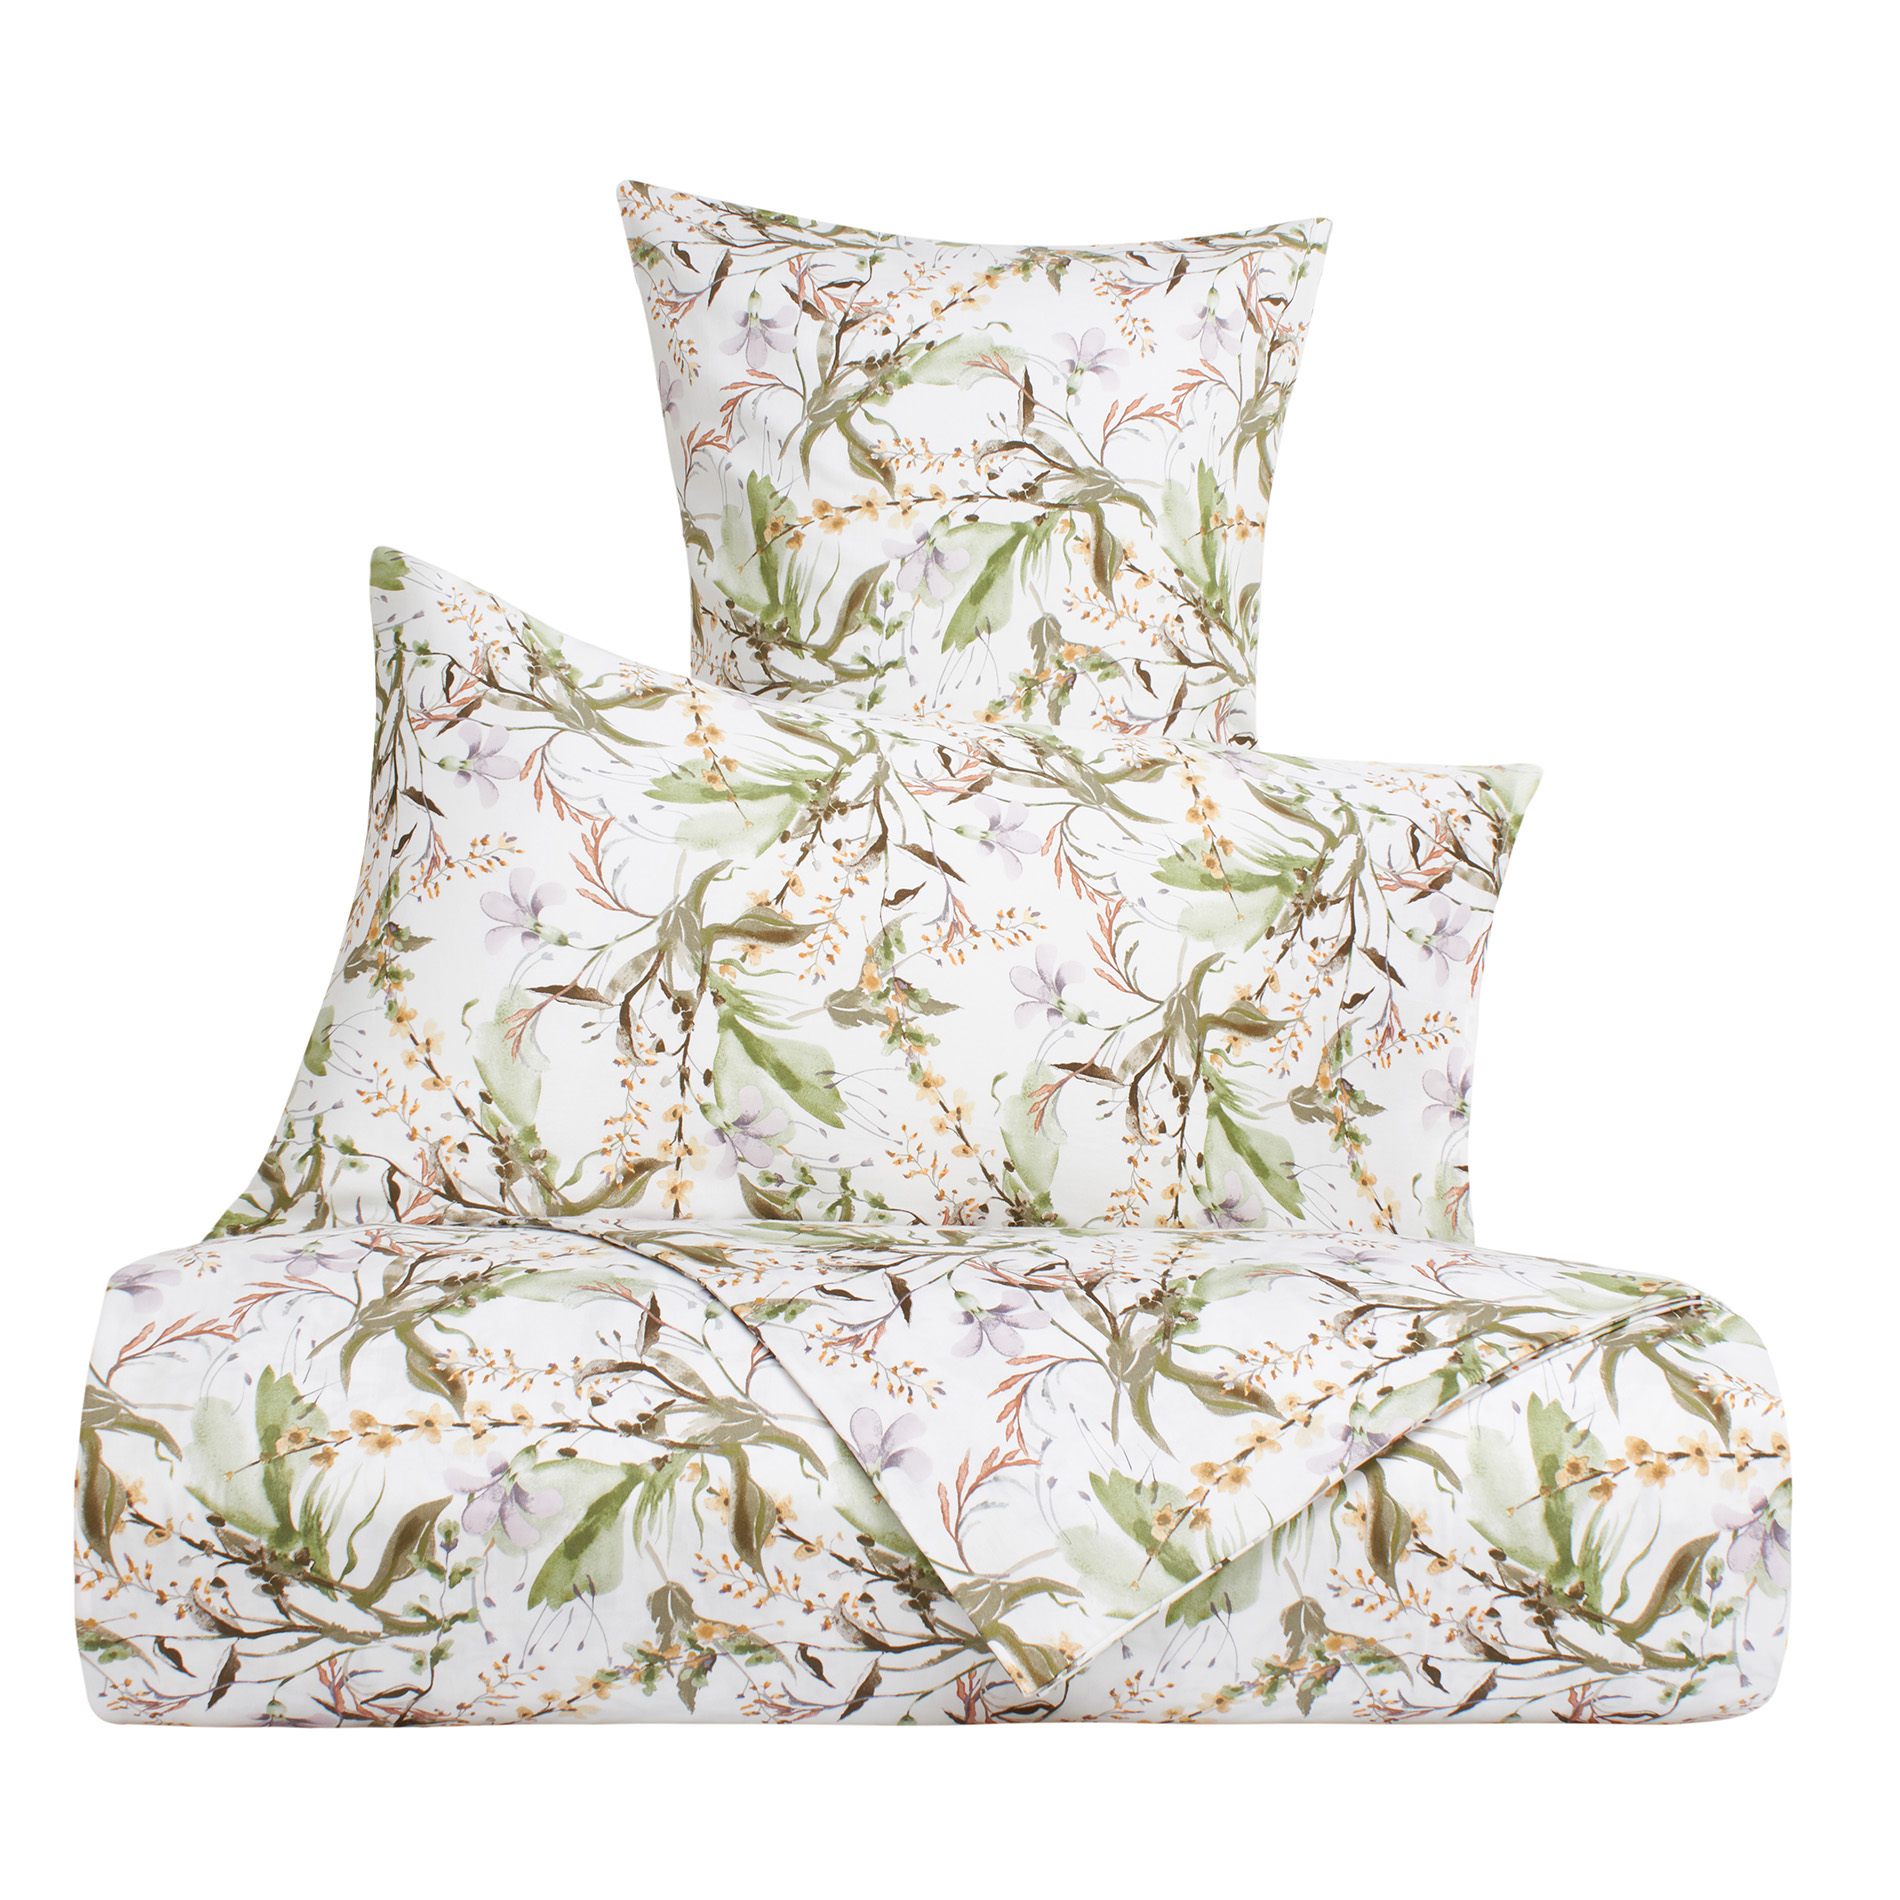 Copripiumino Coin.Cotton Satin Duvet Cover Set With Flowers Pattern Coincasa